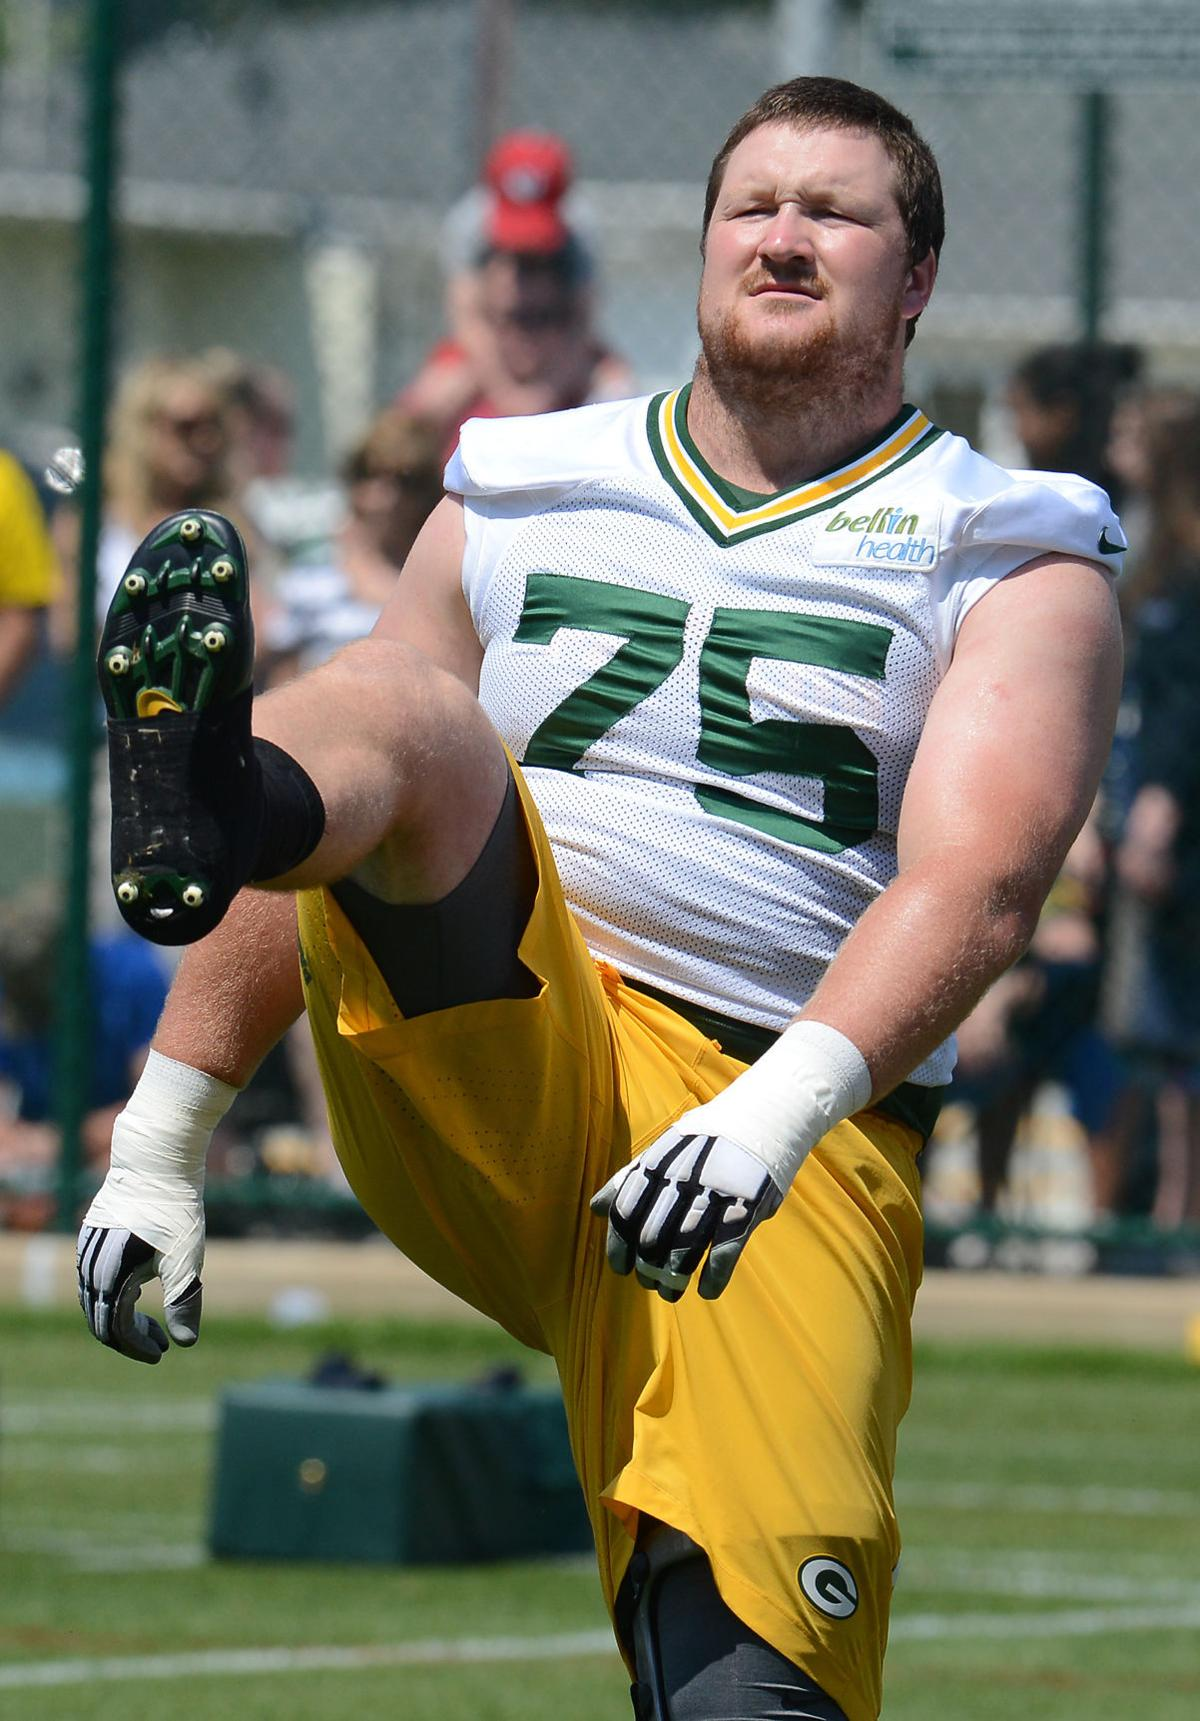 Packers Bryan Bulaga out for Saturday after suffering right ankle